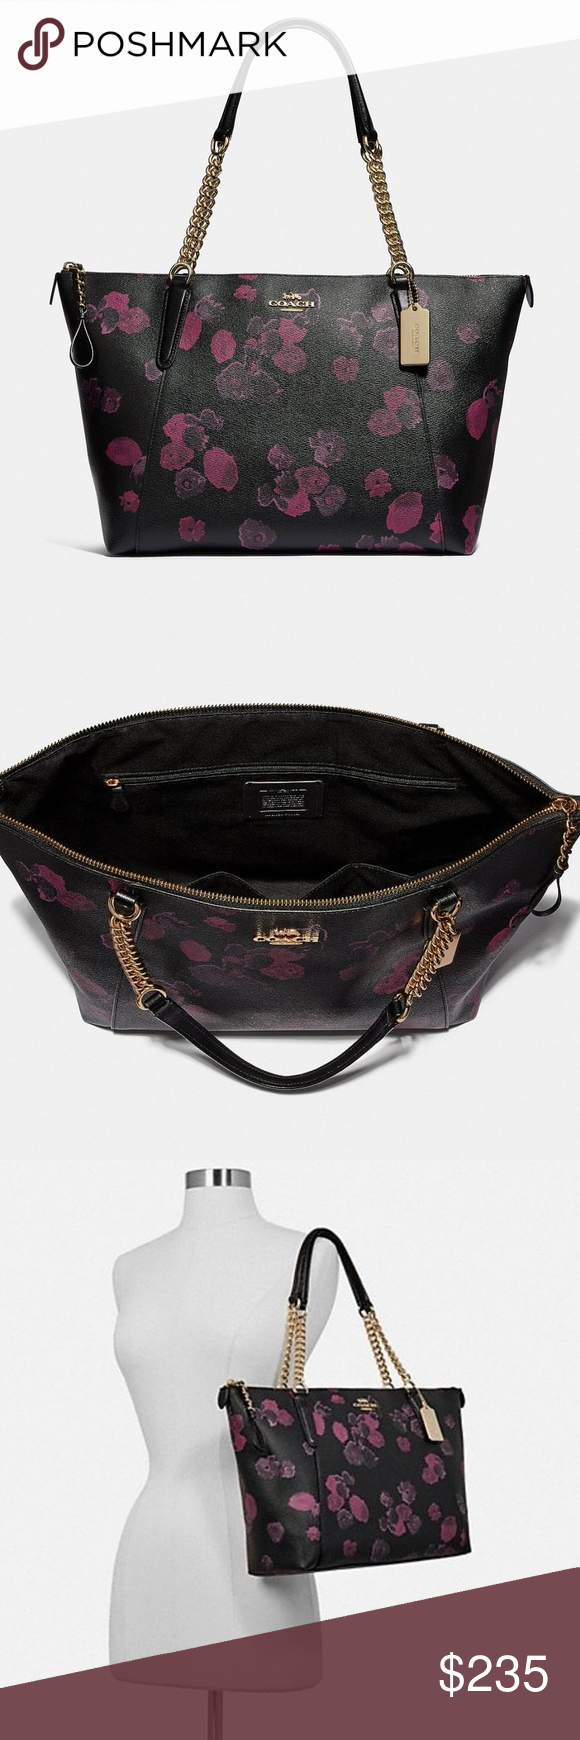 fbfdf719f8c8 Coach Ava Chain Shoulder Bag ~ Halftone Floral New Coach Ava ~ Halftone  Floral BRAND NEW with Tags Printed coated canvas with smooth leather  details Inside ...